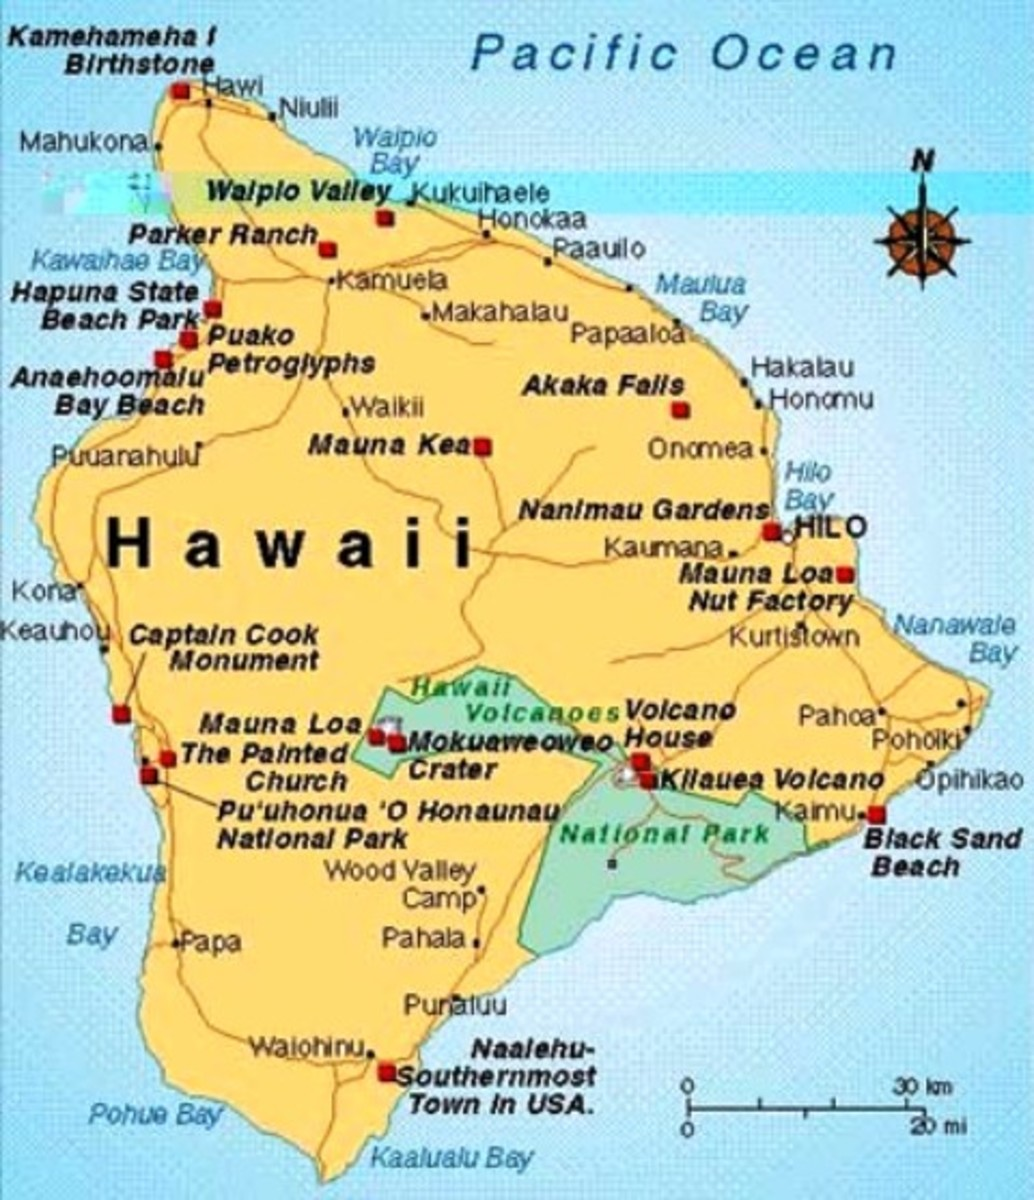 Kealakekua Bay is situated on the west side of Hawaii (left of the 'H' on the map)